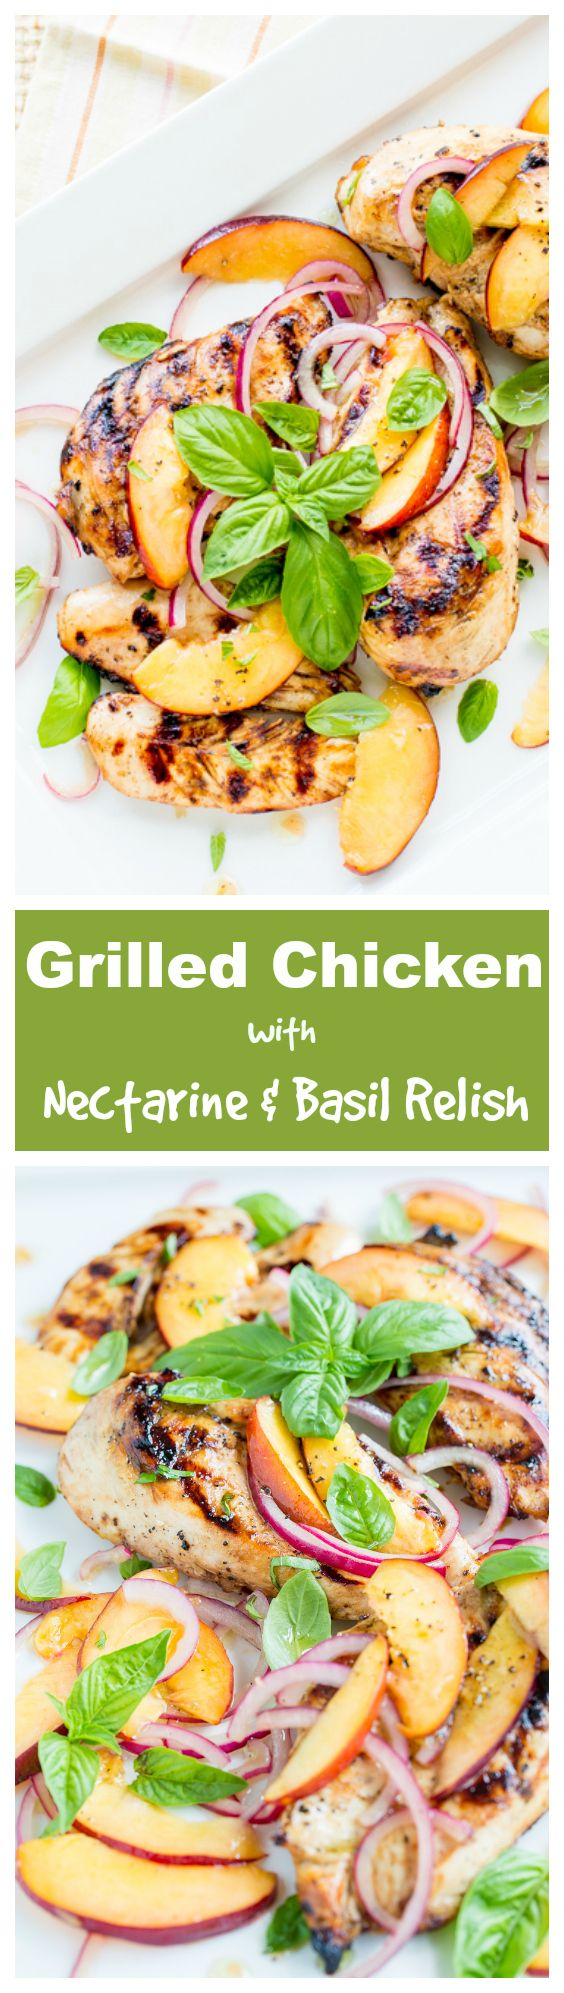 Juicy Grilled Chicken with fresh Nectarines, Onions and Basil